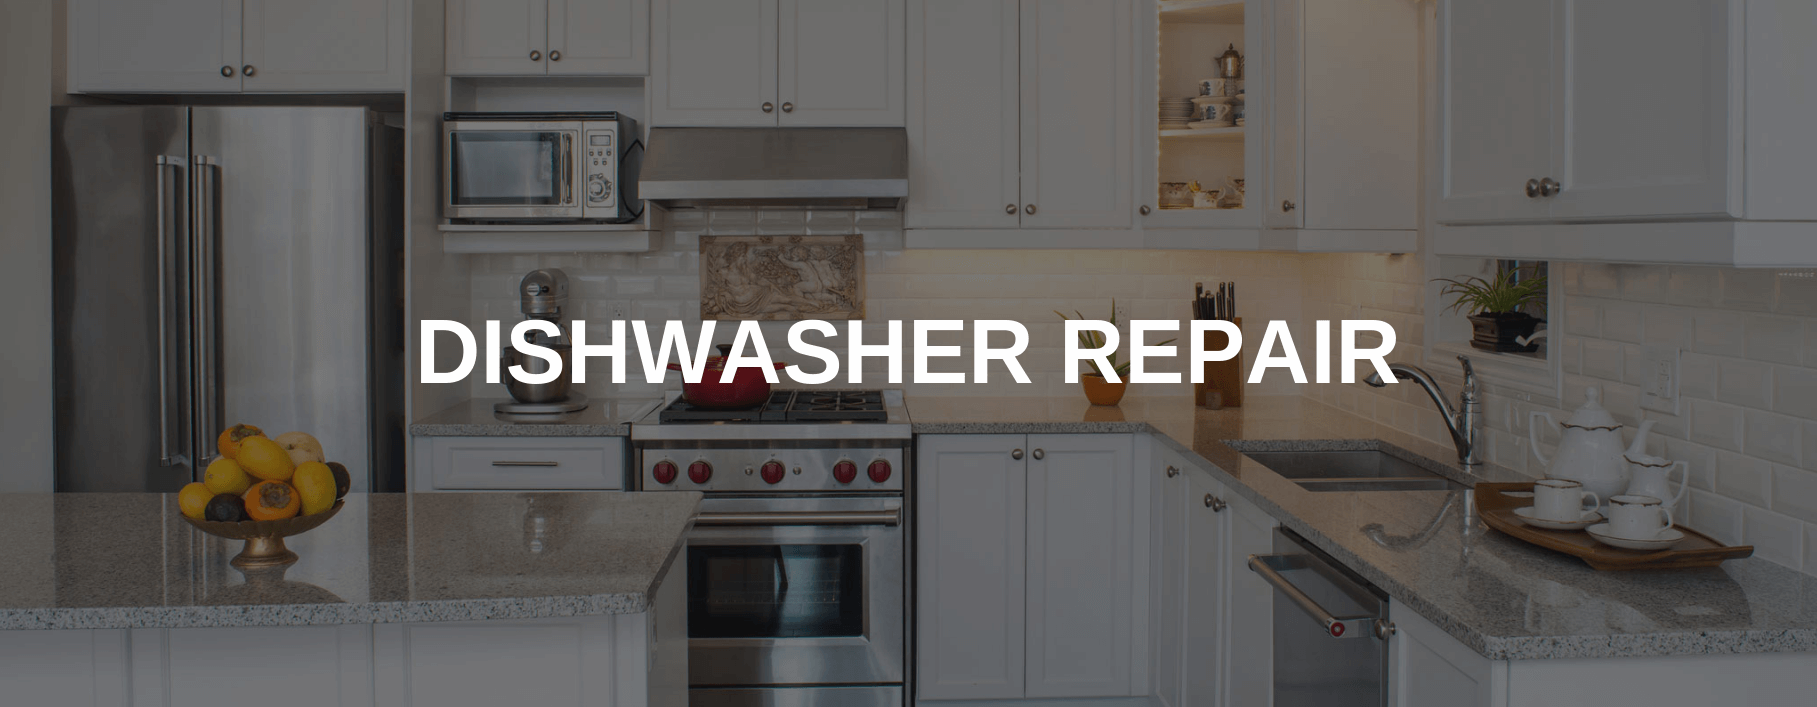 dishwasher repair naugatuck